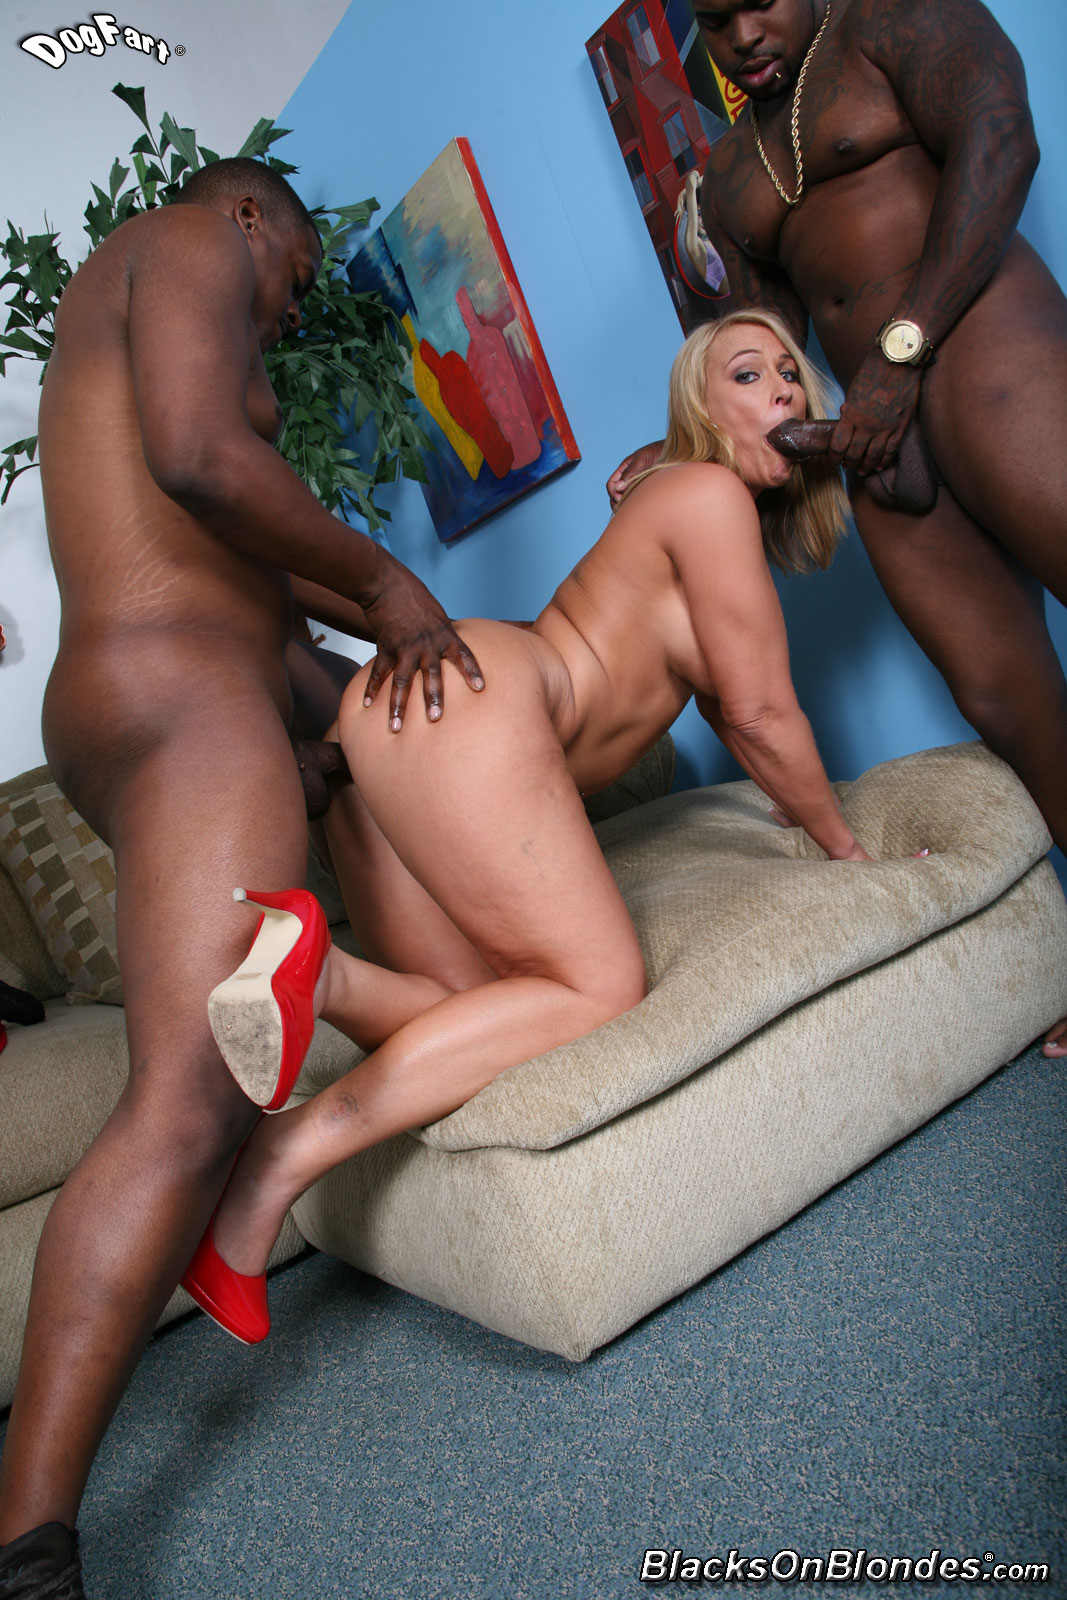 Removed Mellanie monroe interracial porn pics consider